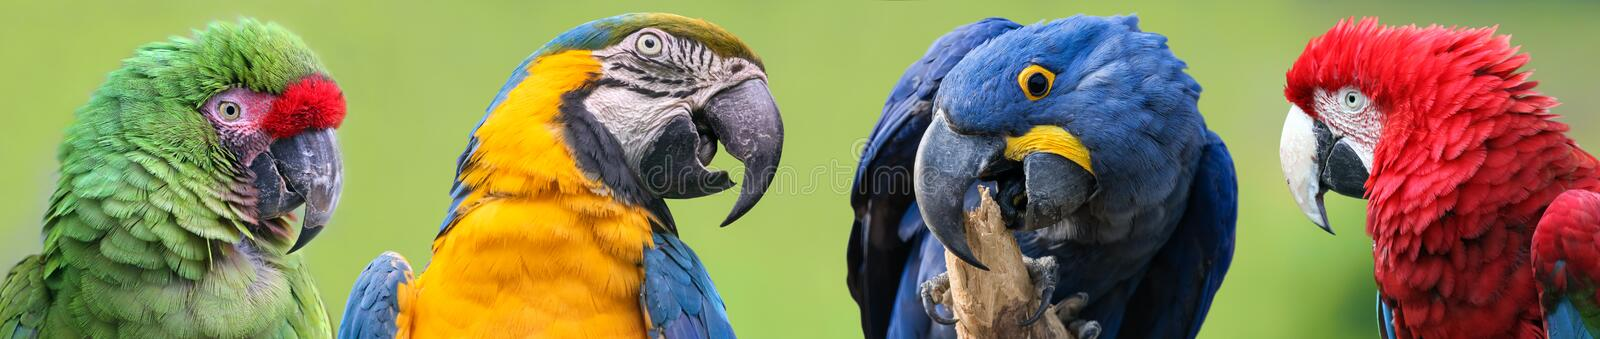 Colorful group of Macaws - 4 species stock photo